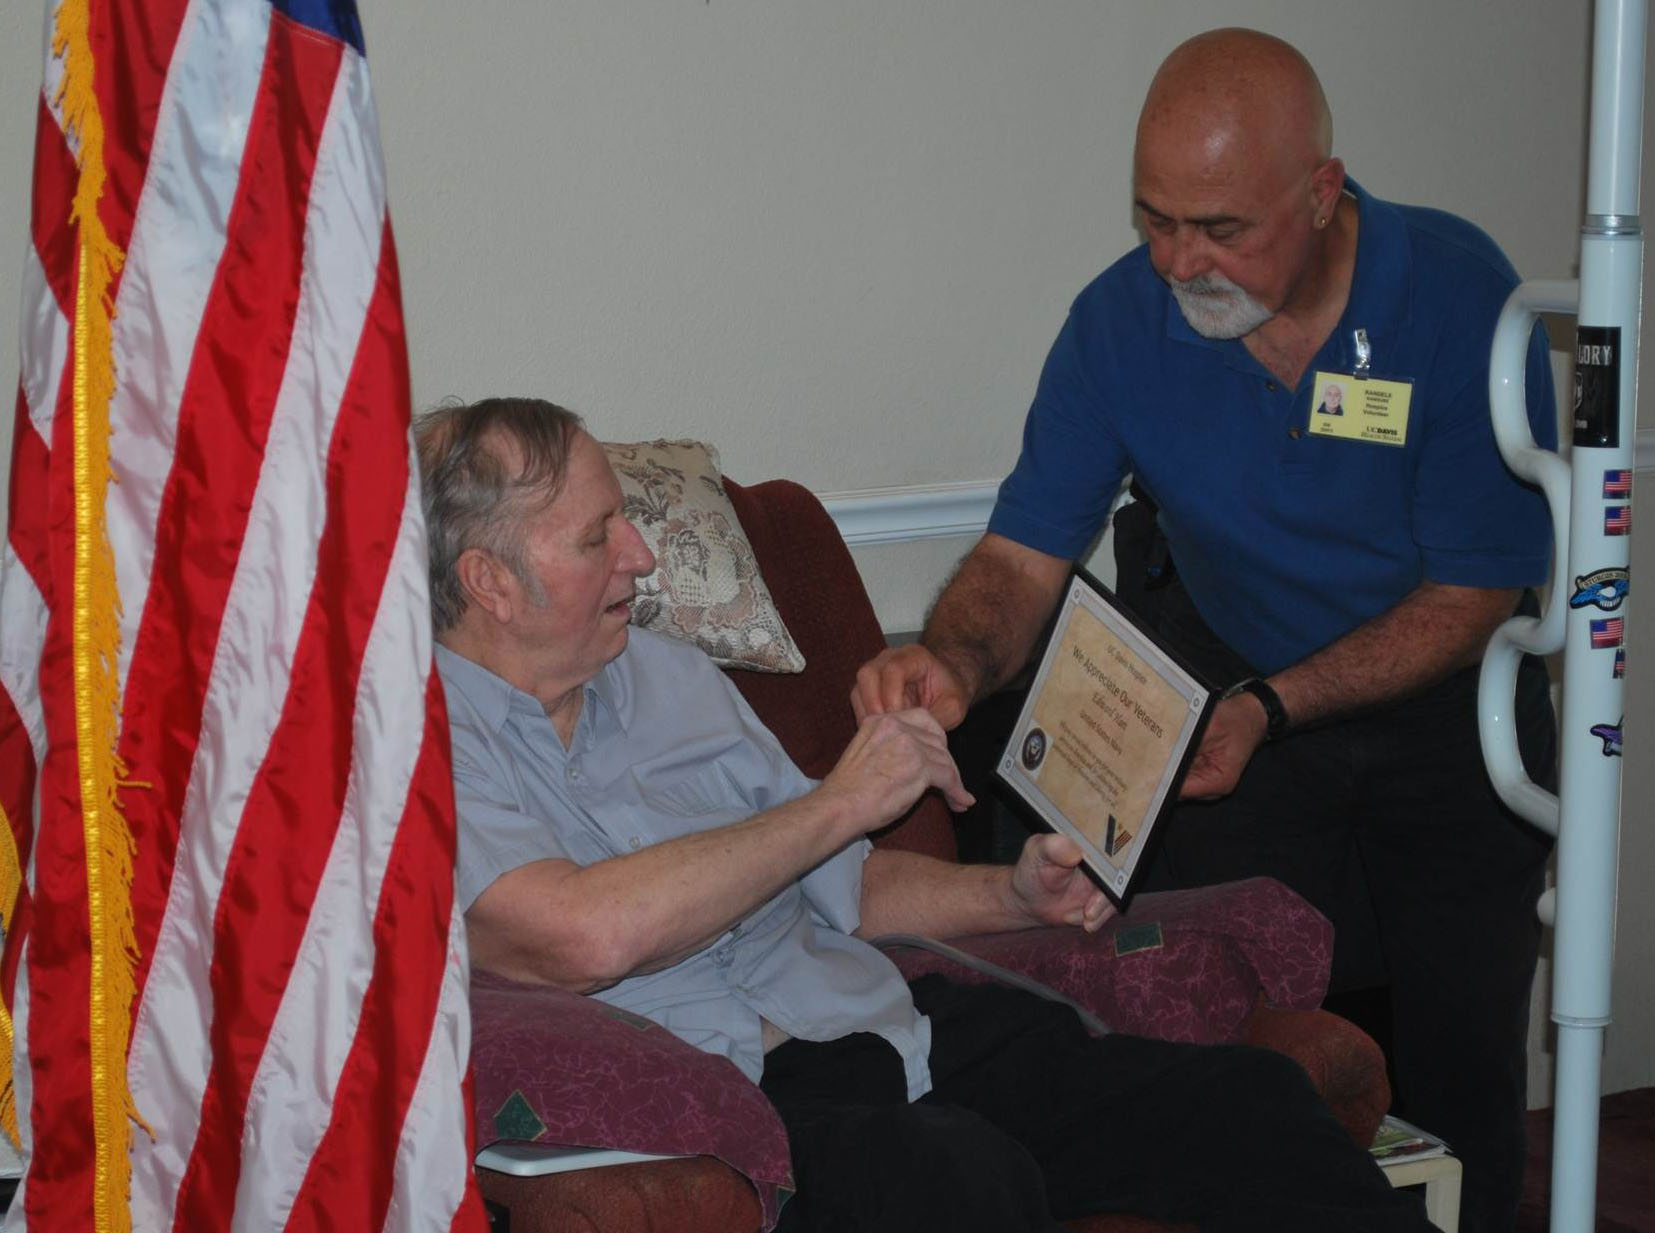 Hospice volunteer with veteran